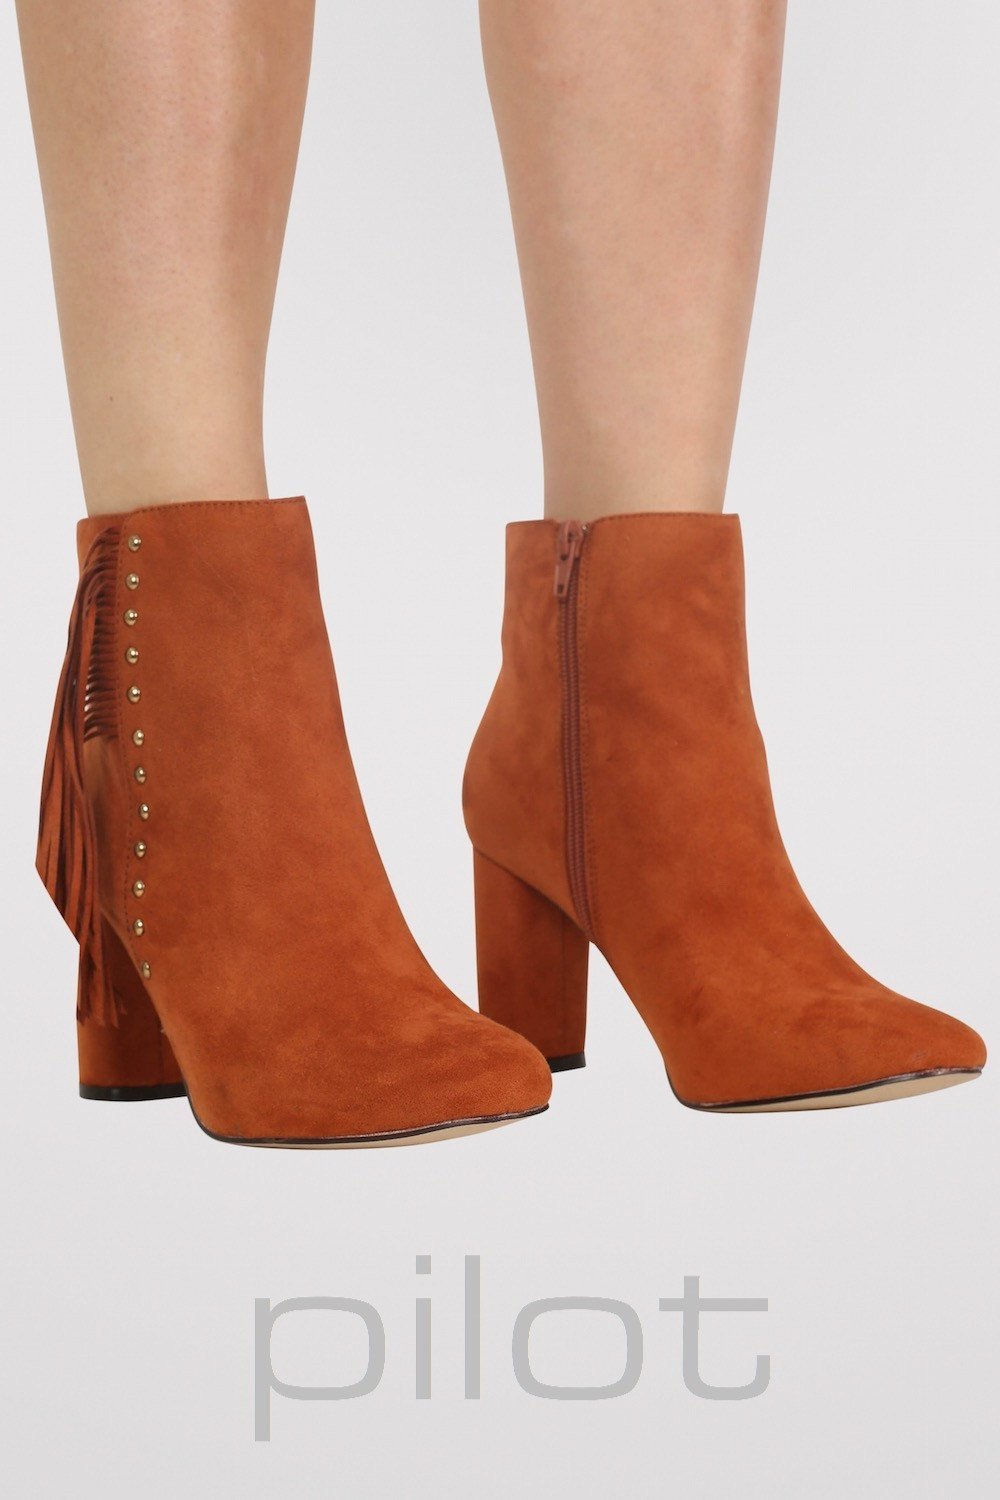 Fringe Stud Detail Ankle Boots in Tan Brown 0